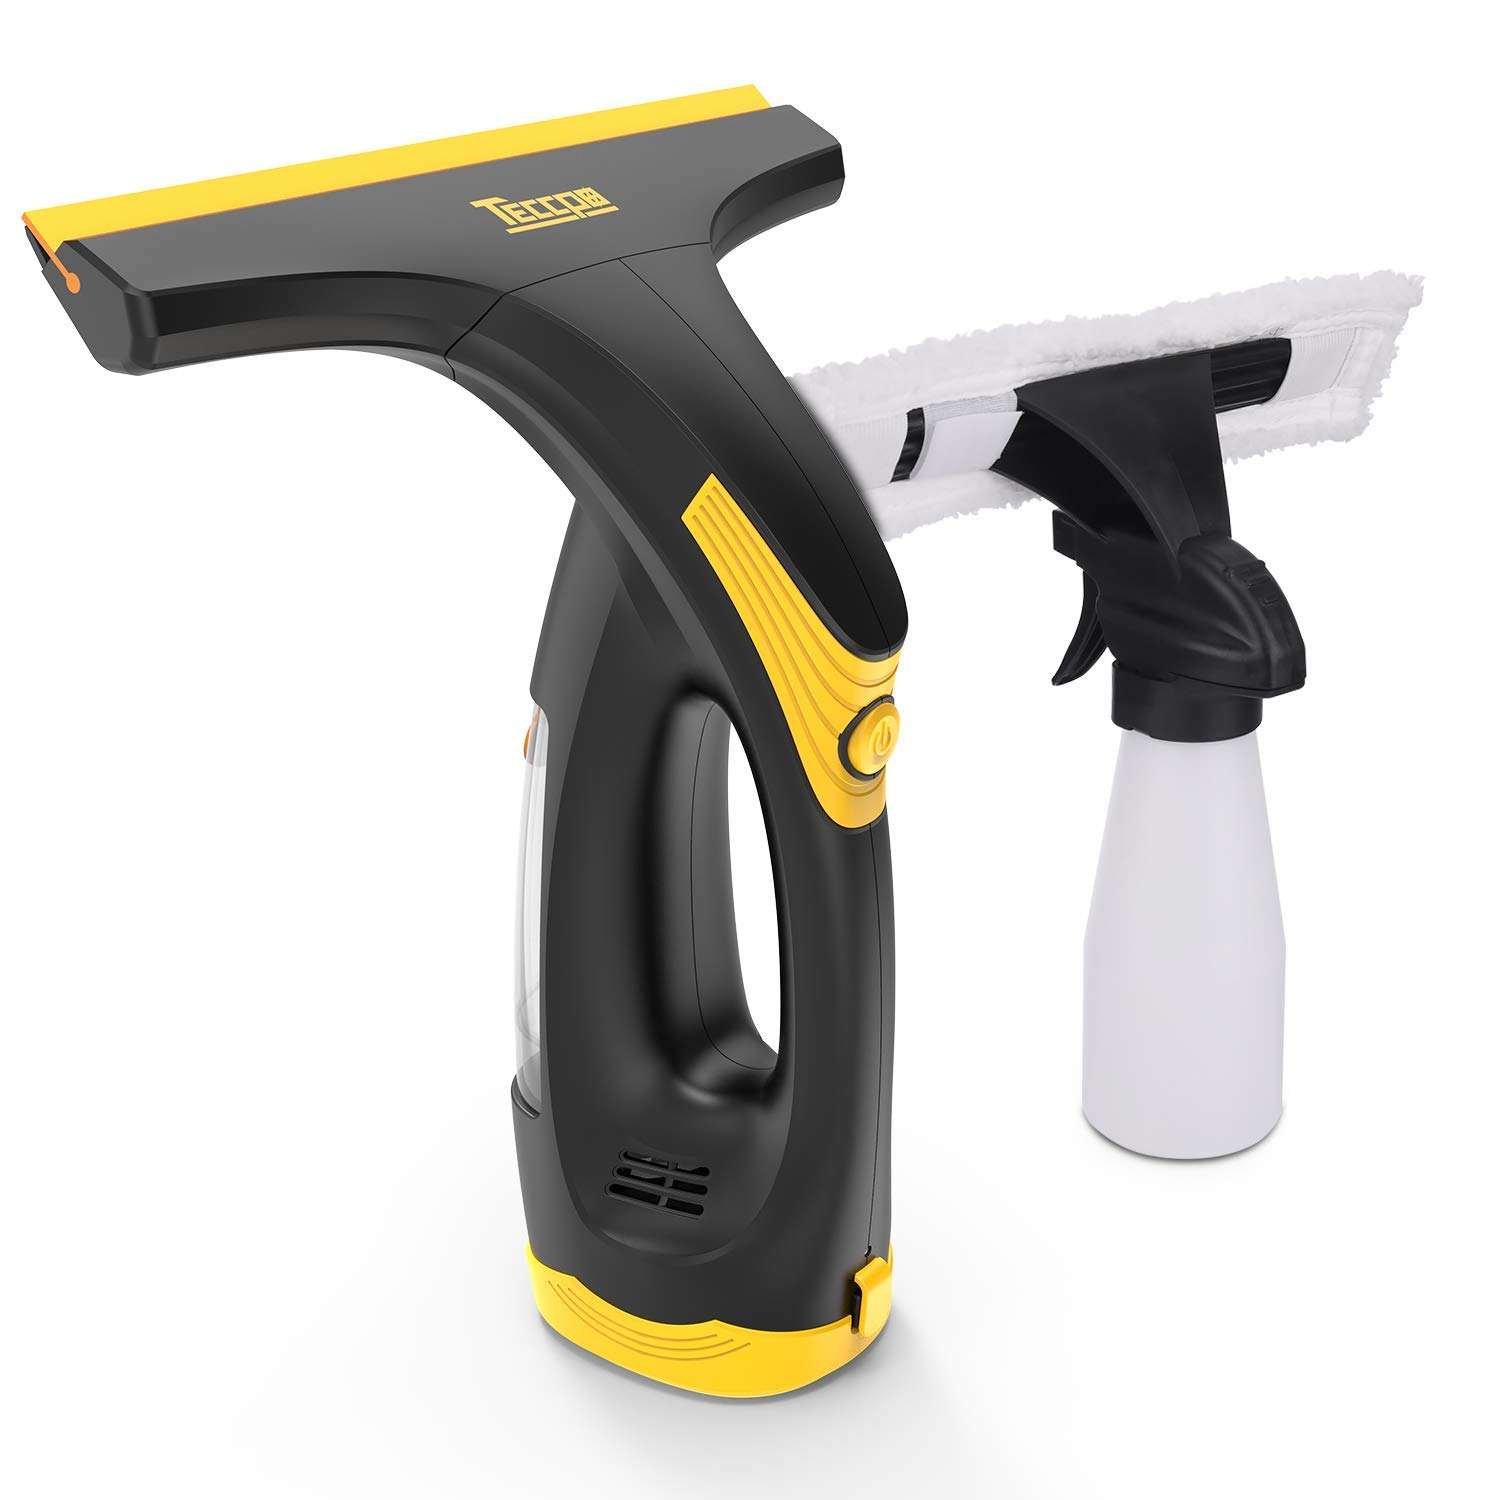 Window Vac, TECCPO Cordless Window Vacuum, Lithium Battery, Spray Bottle, 280mm Blade, Window Cleaner for Smooth Surface Such as Windows, Tiles -TDWC01G